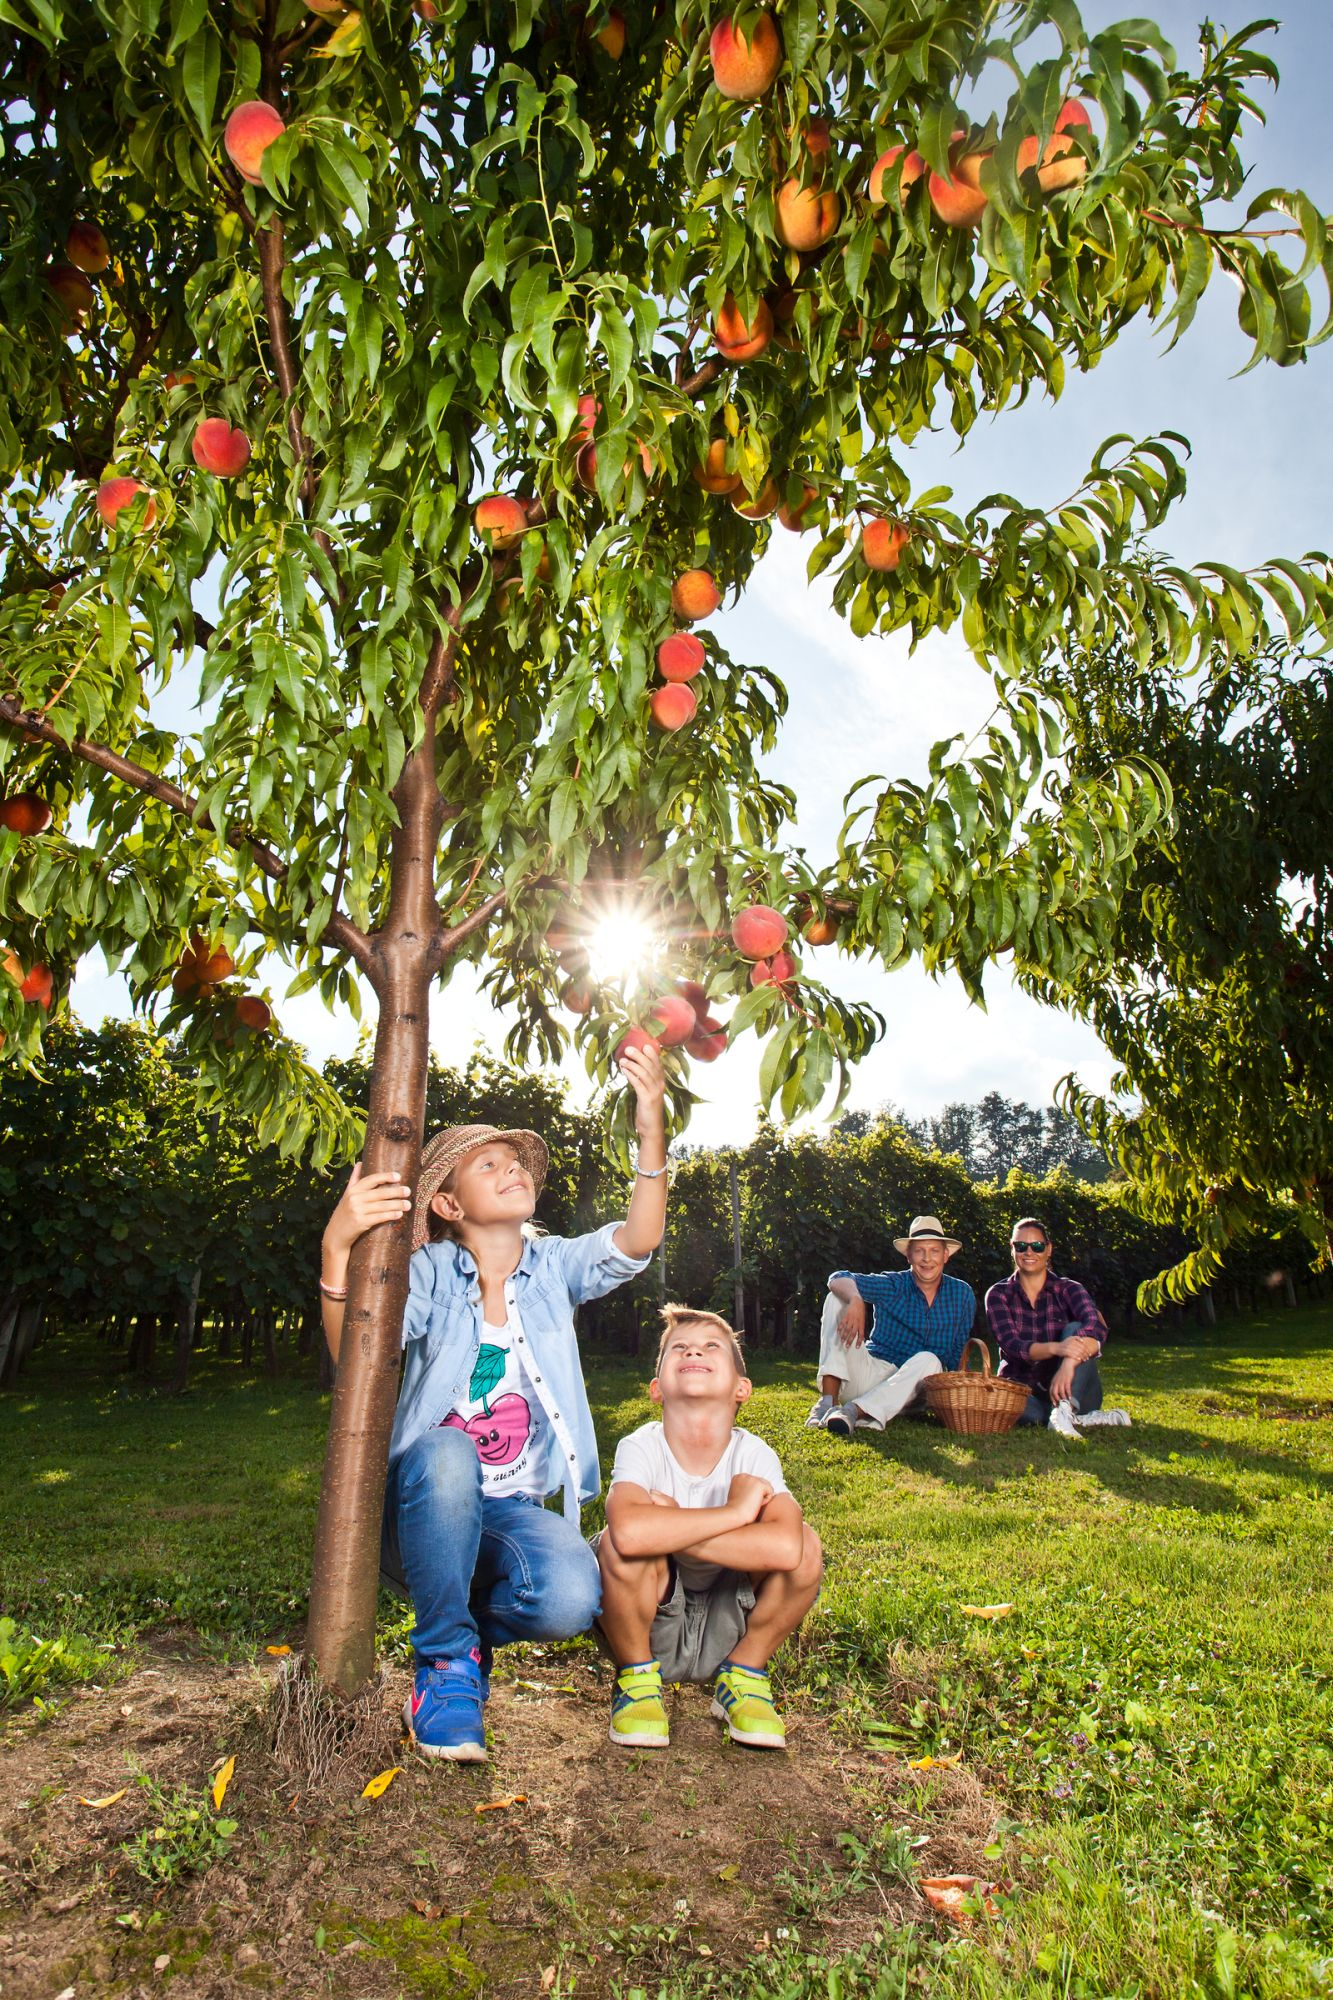 A family collects peaches in the Slovenian countryside